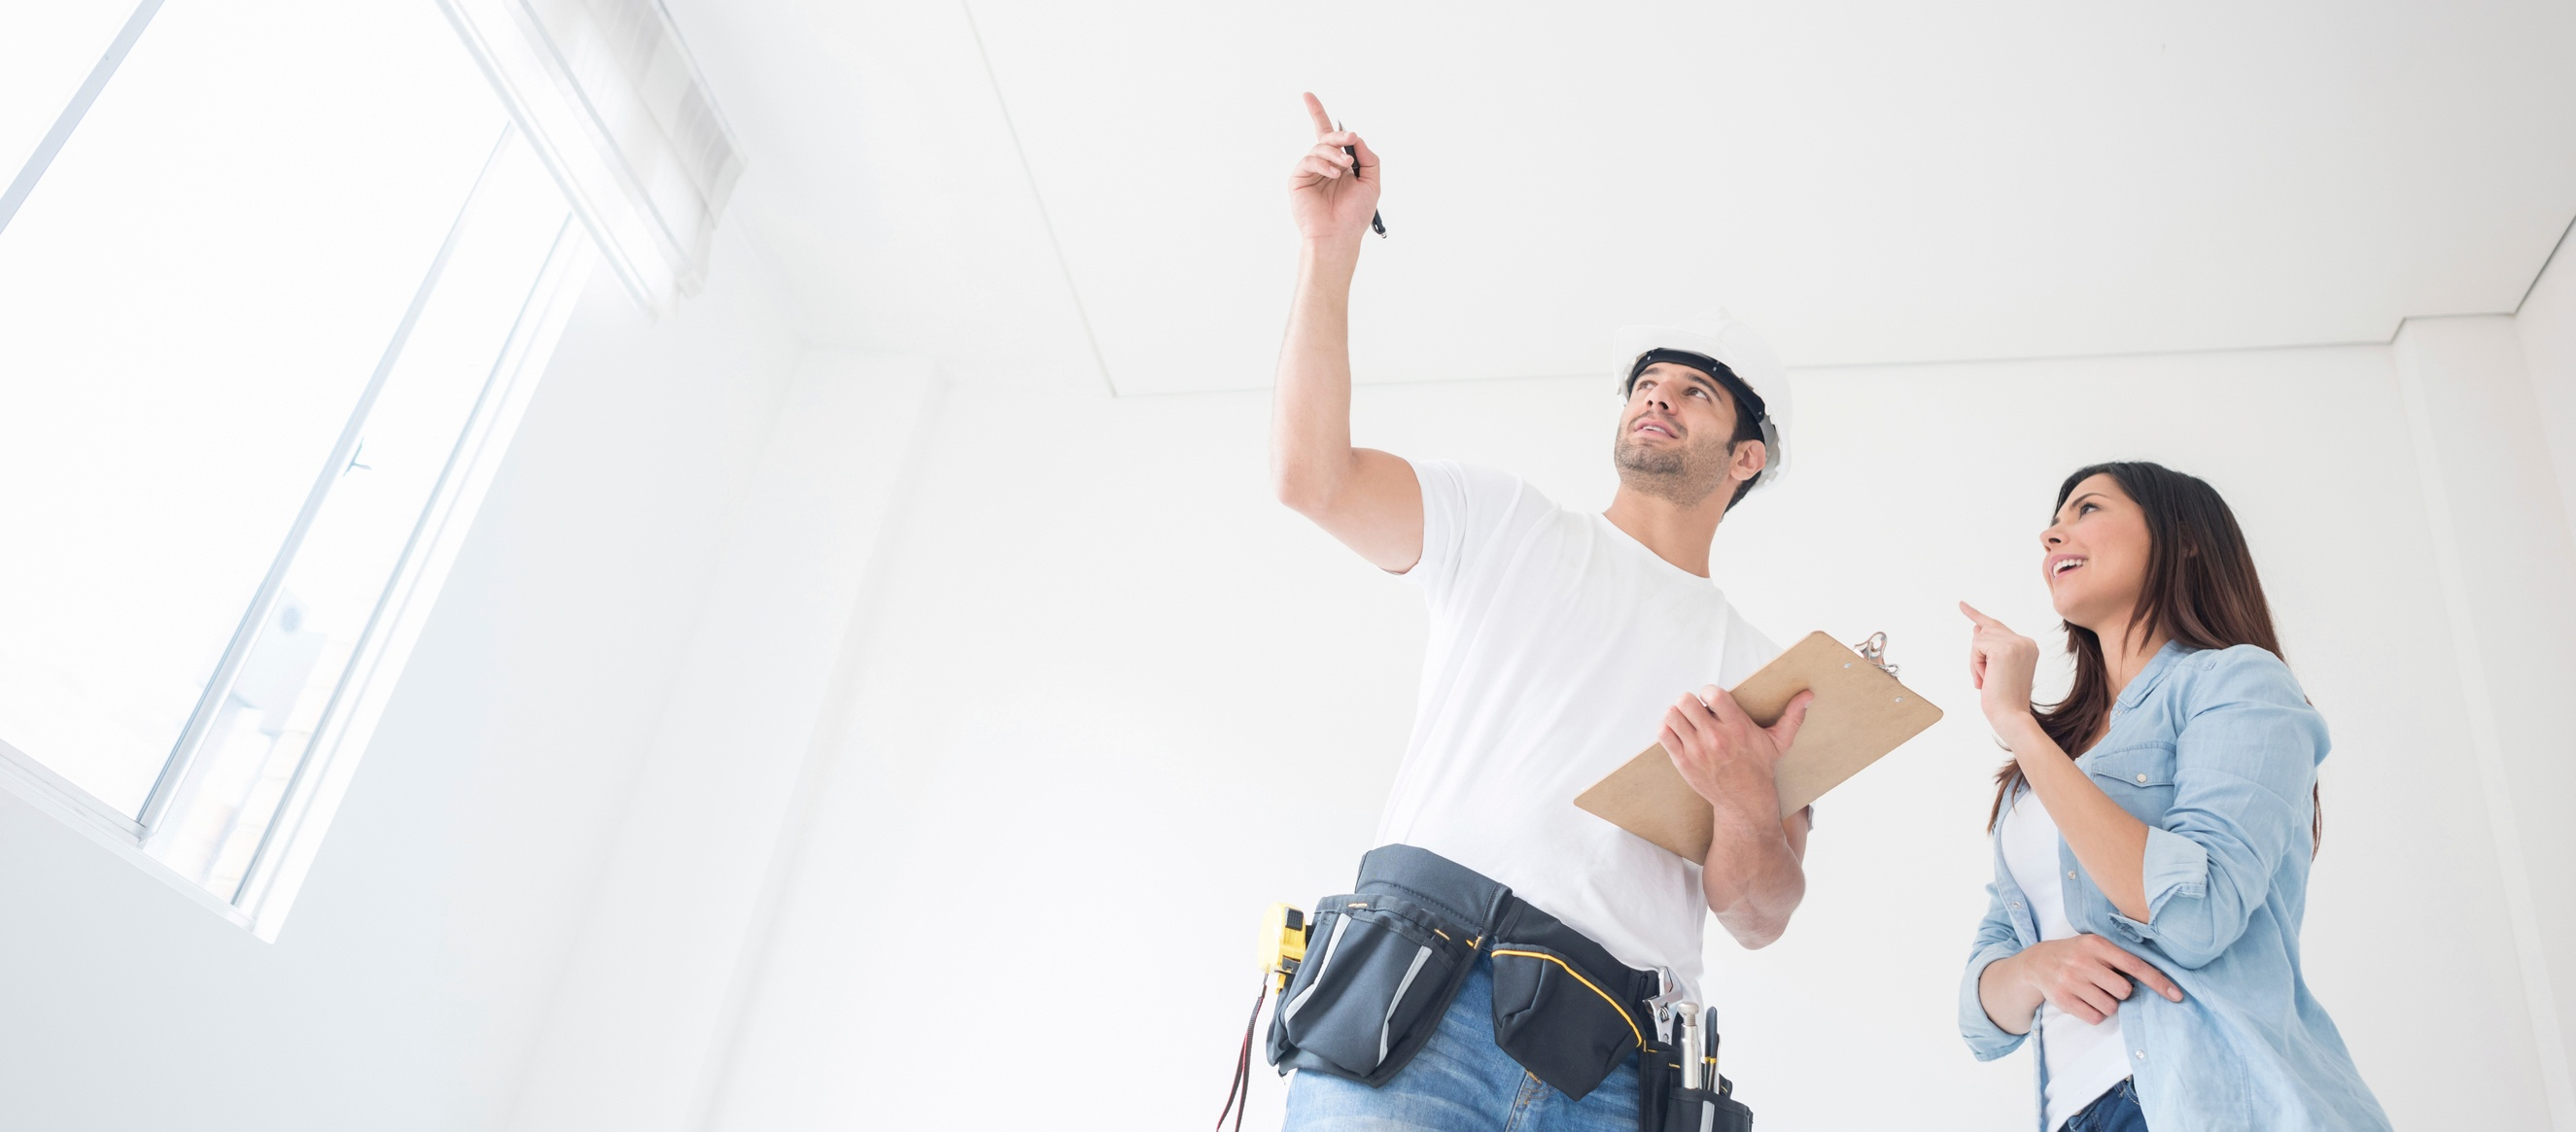 How To Find A Home Improvement Contractor That Will Stay On Schedule